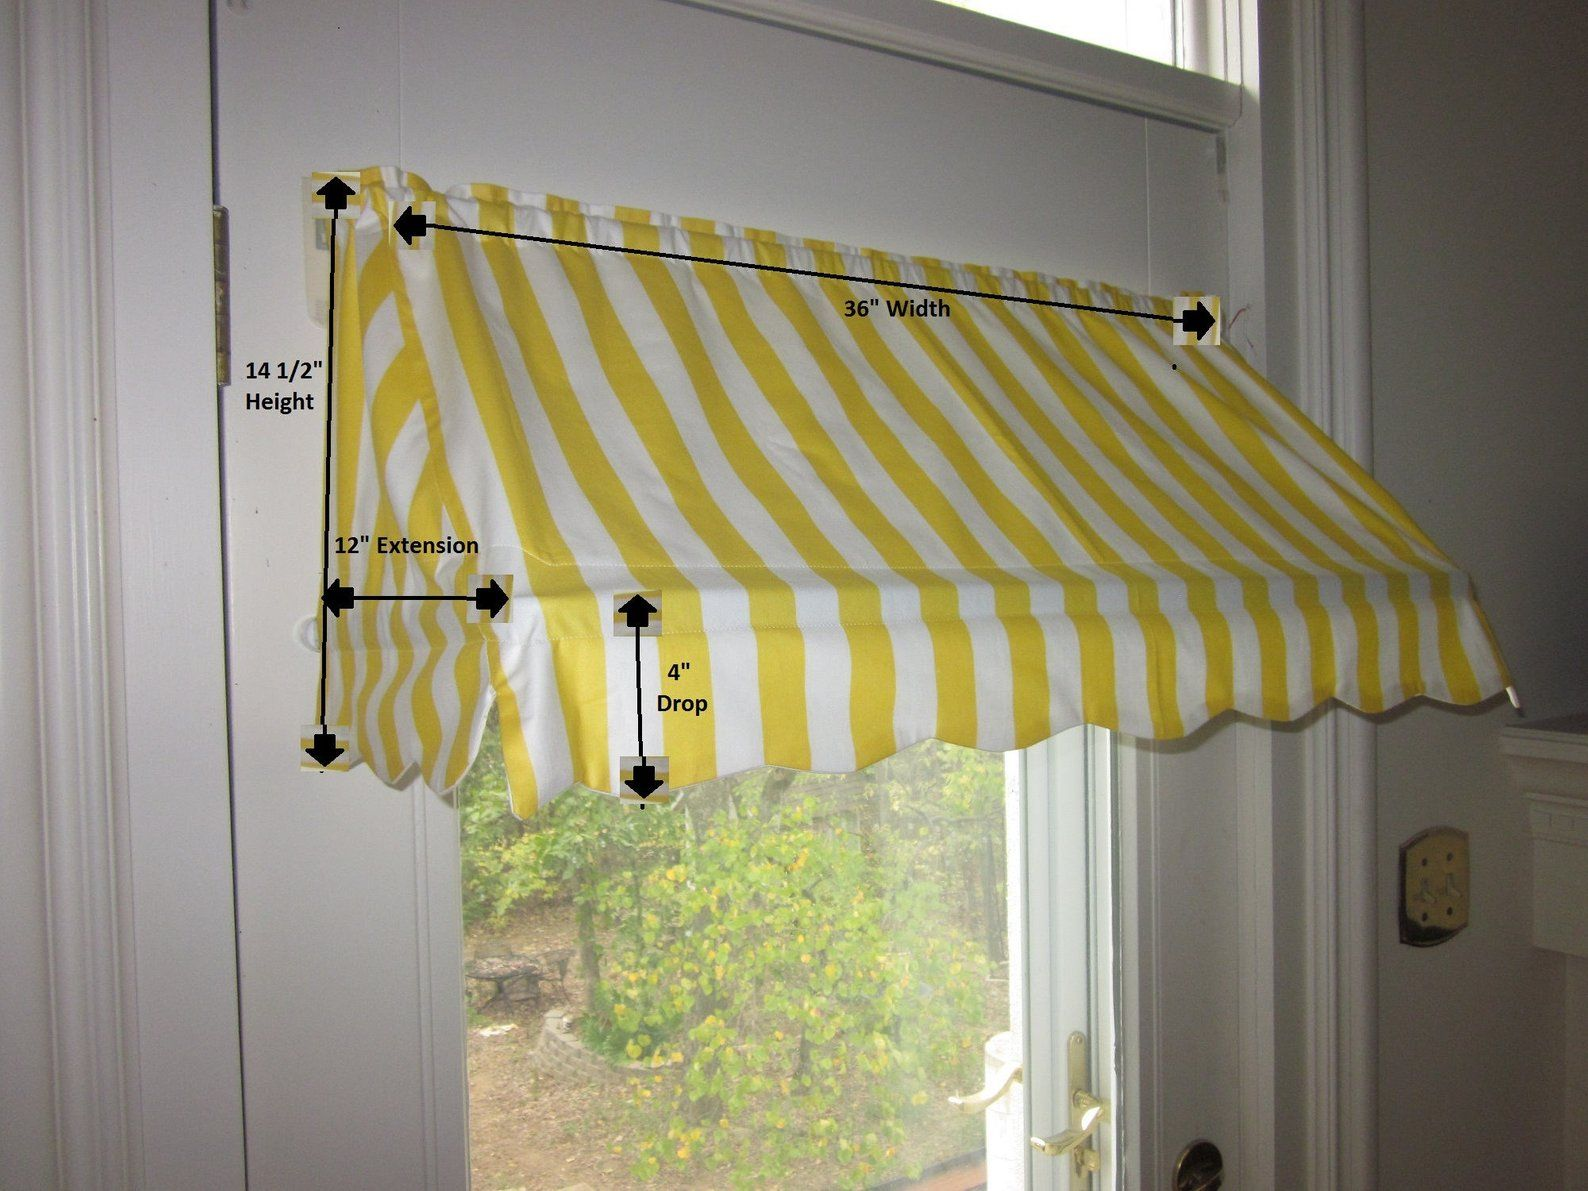 Party Table Awning 18 High 70 Wide And 16 Etsy Indoor Awnings Fabric Awning Window Decor